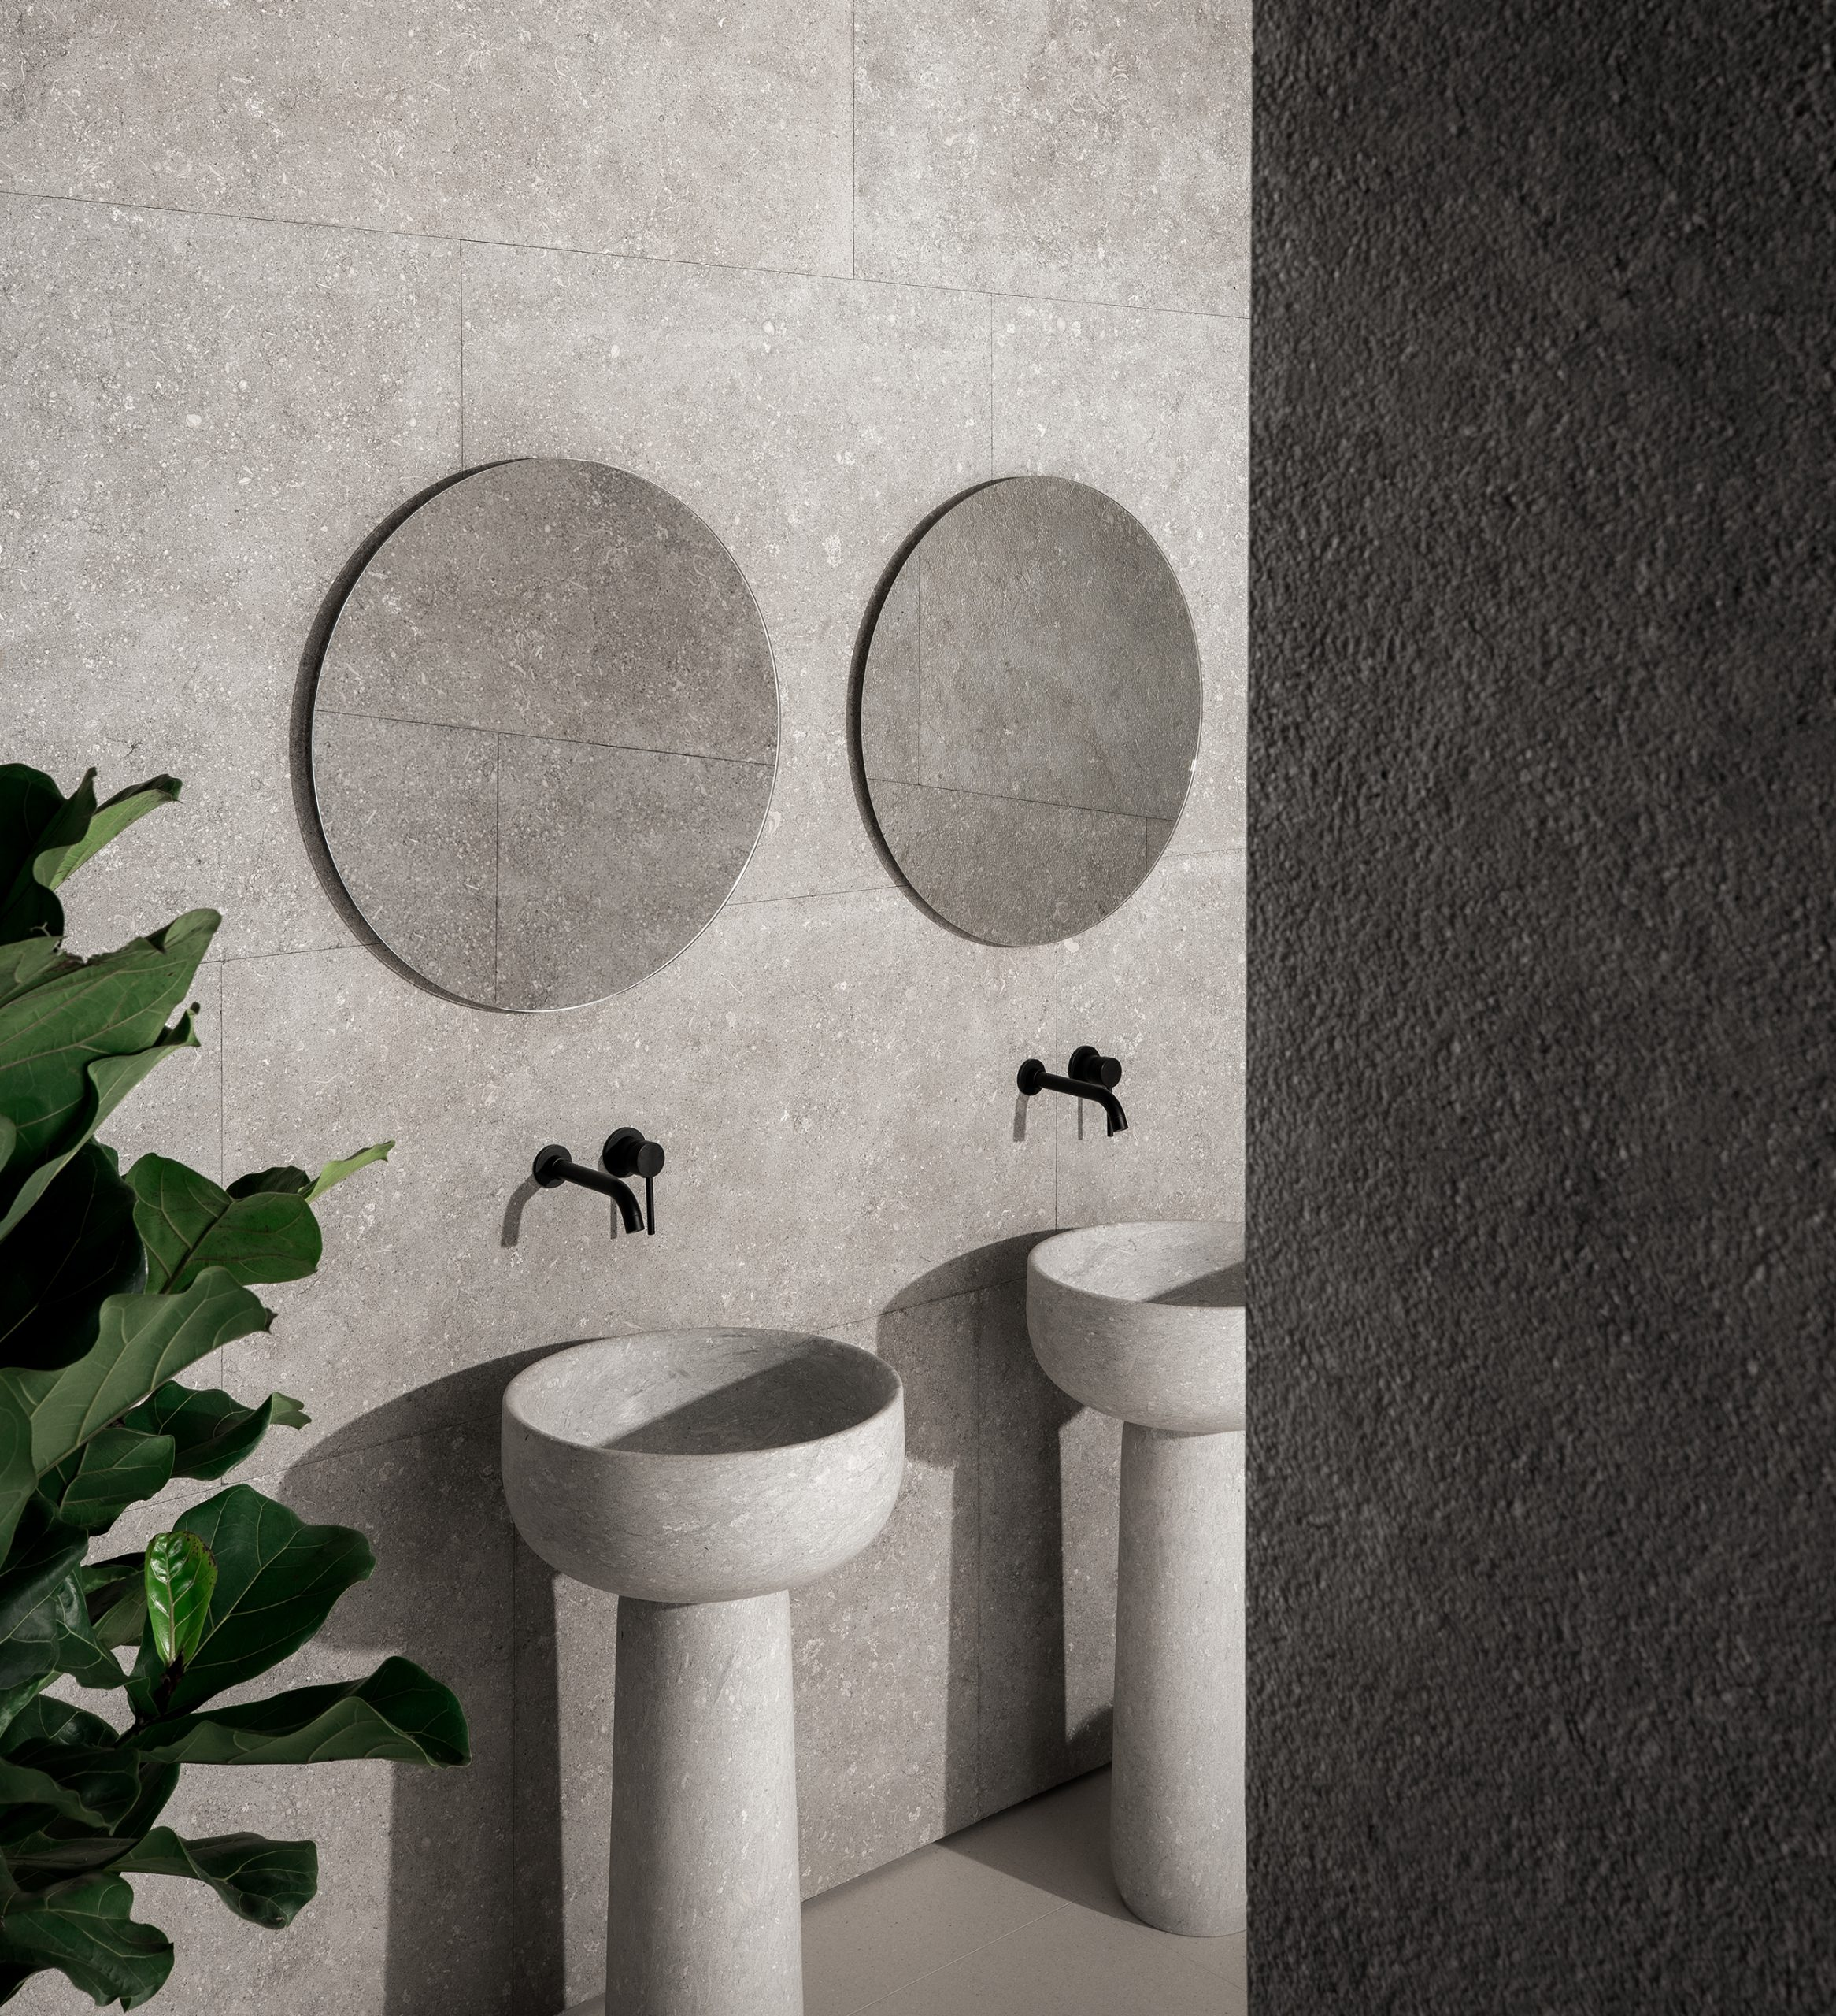 Two freestanding Tetide washbasins made from Vicenza stone, designed by Debiasi Sandri for Grassi Pietre